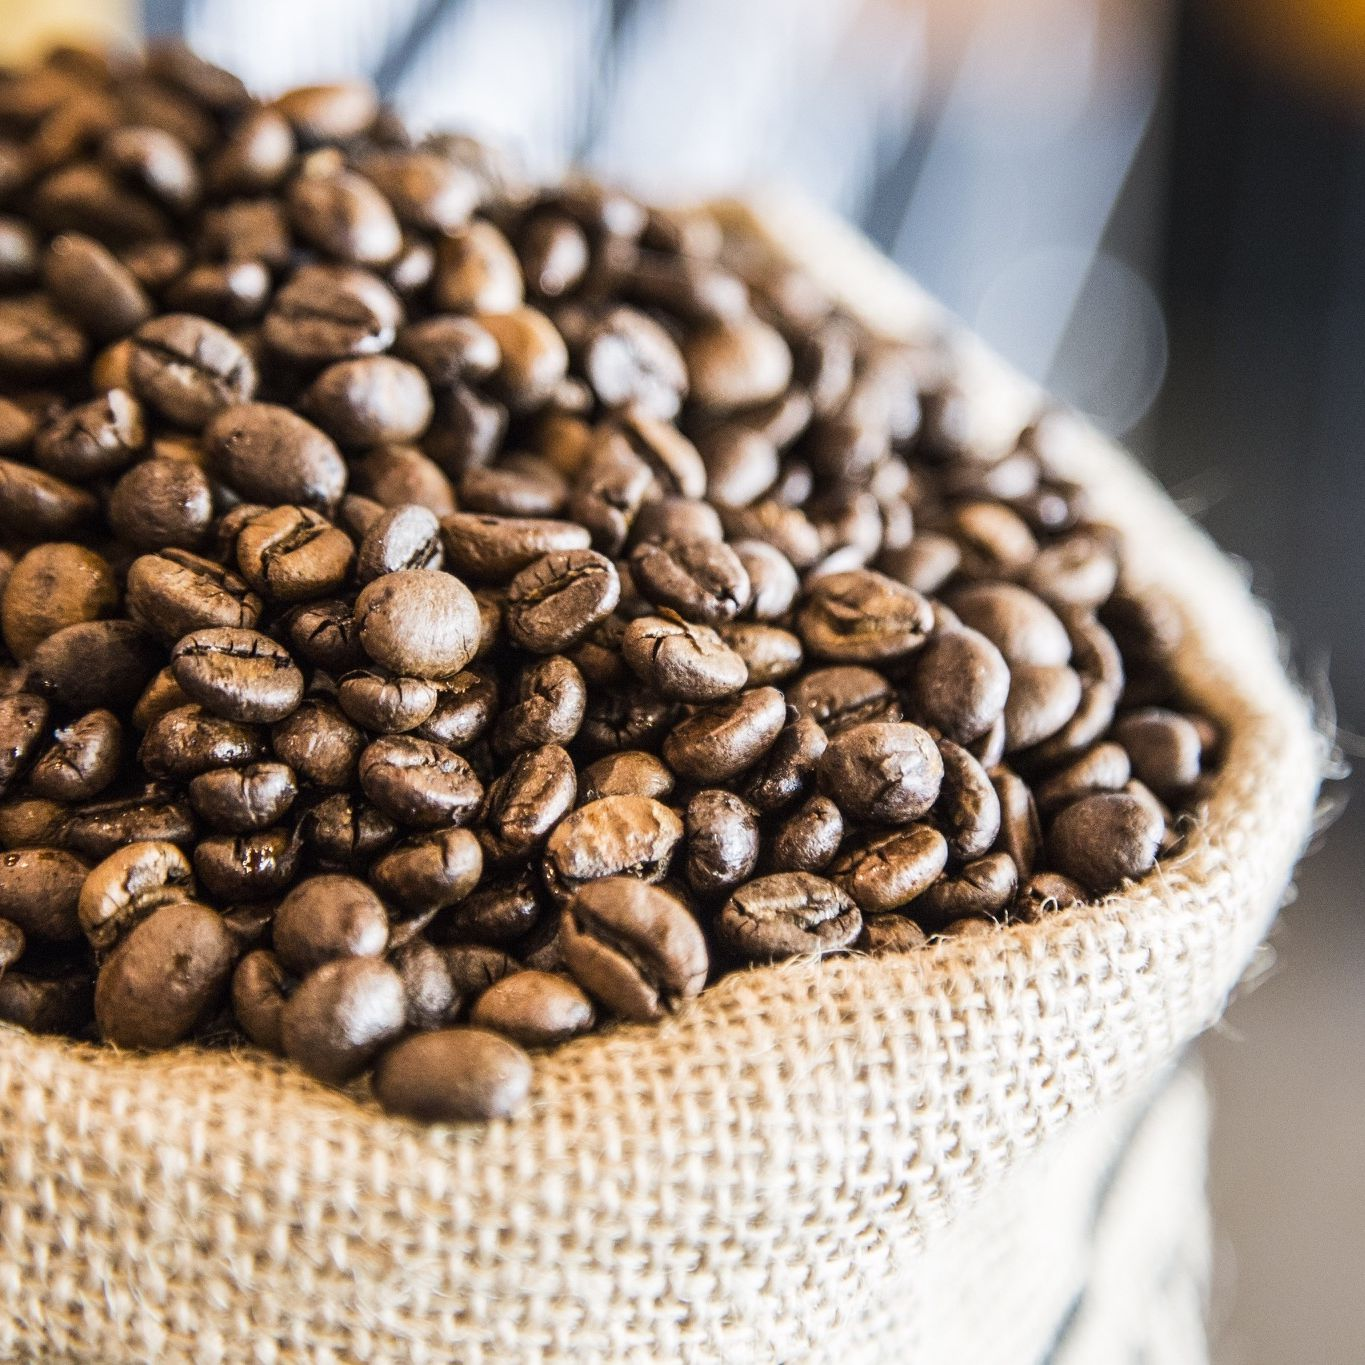 Ethiopia's Coffee-Growing Areas May Be Headed for the Hills